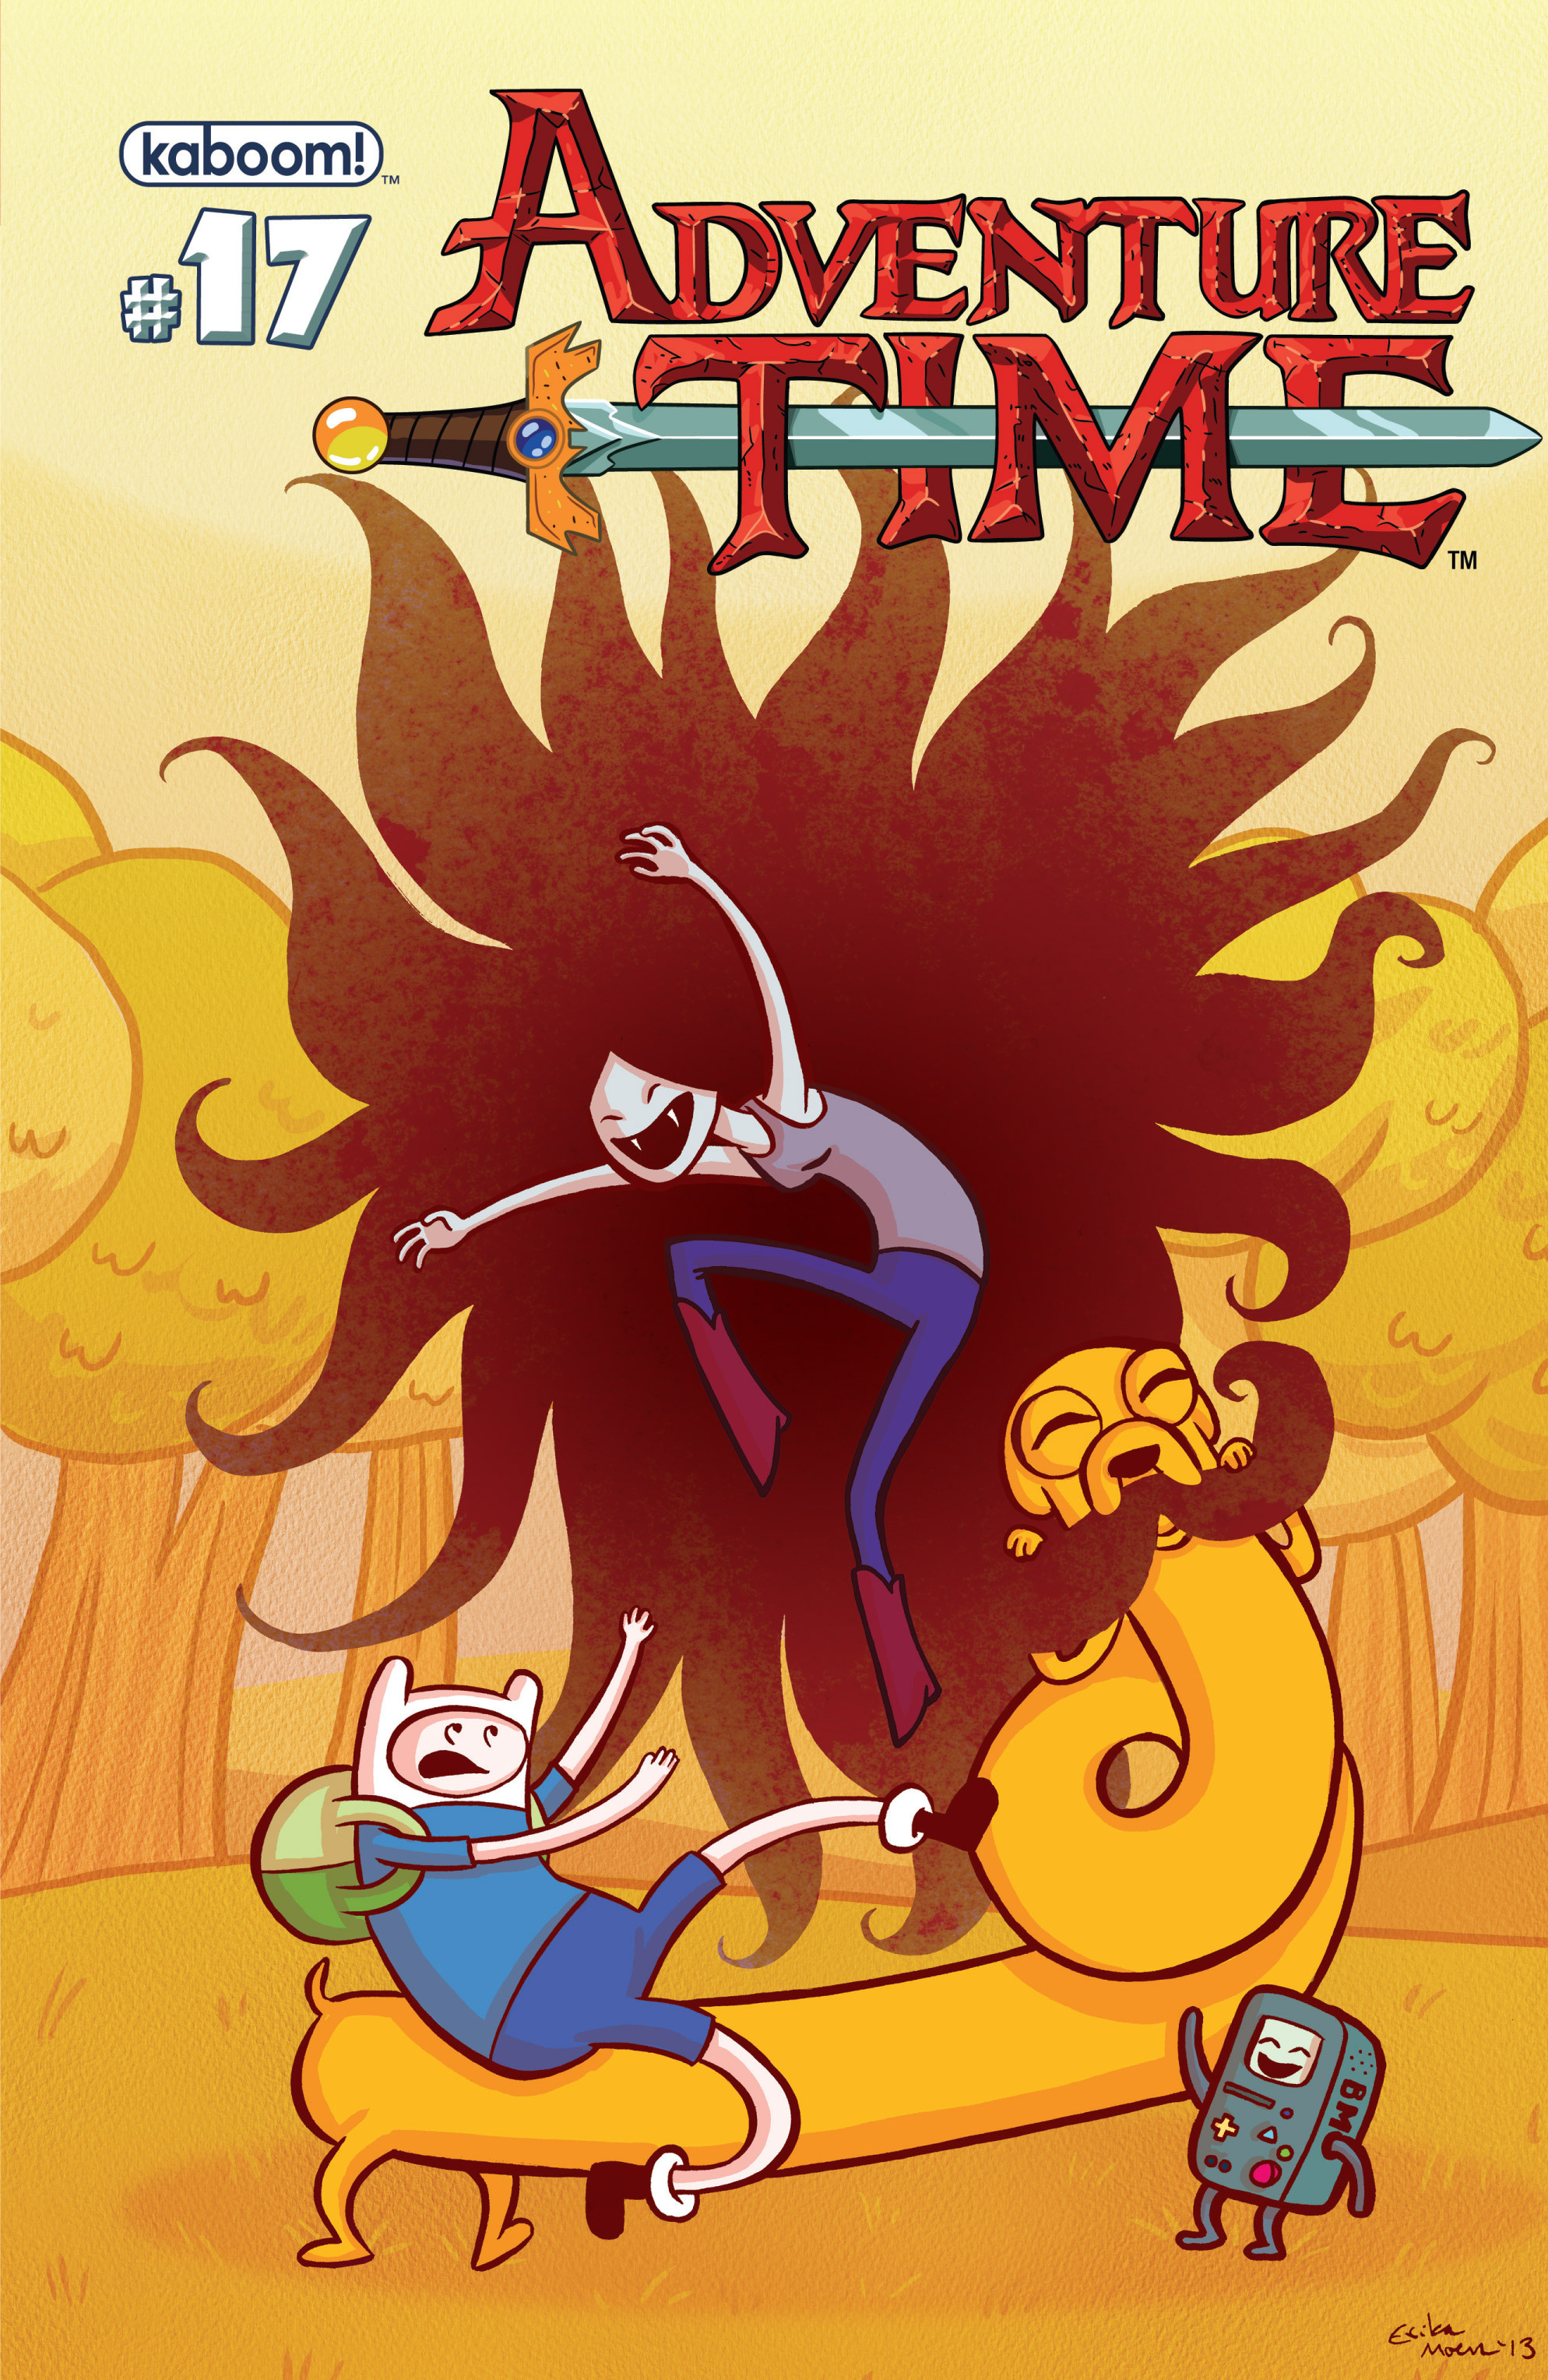 Read online Adventure Time comic -  Issue #17 - 2